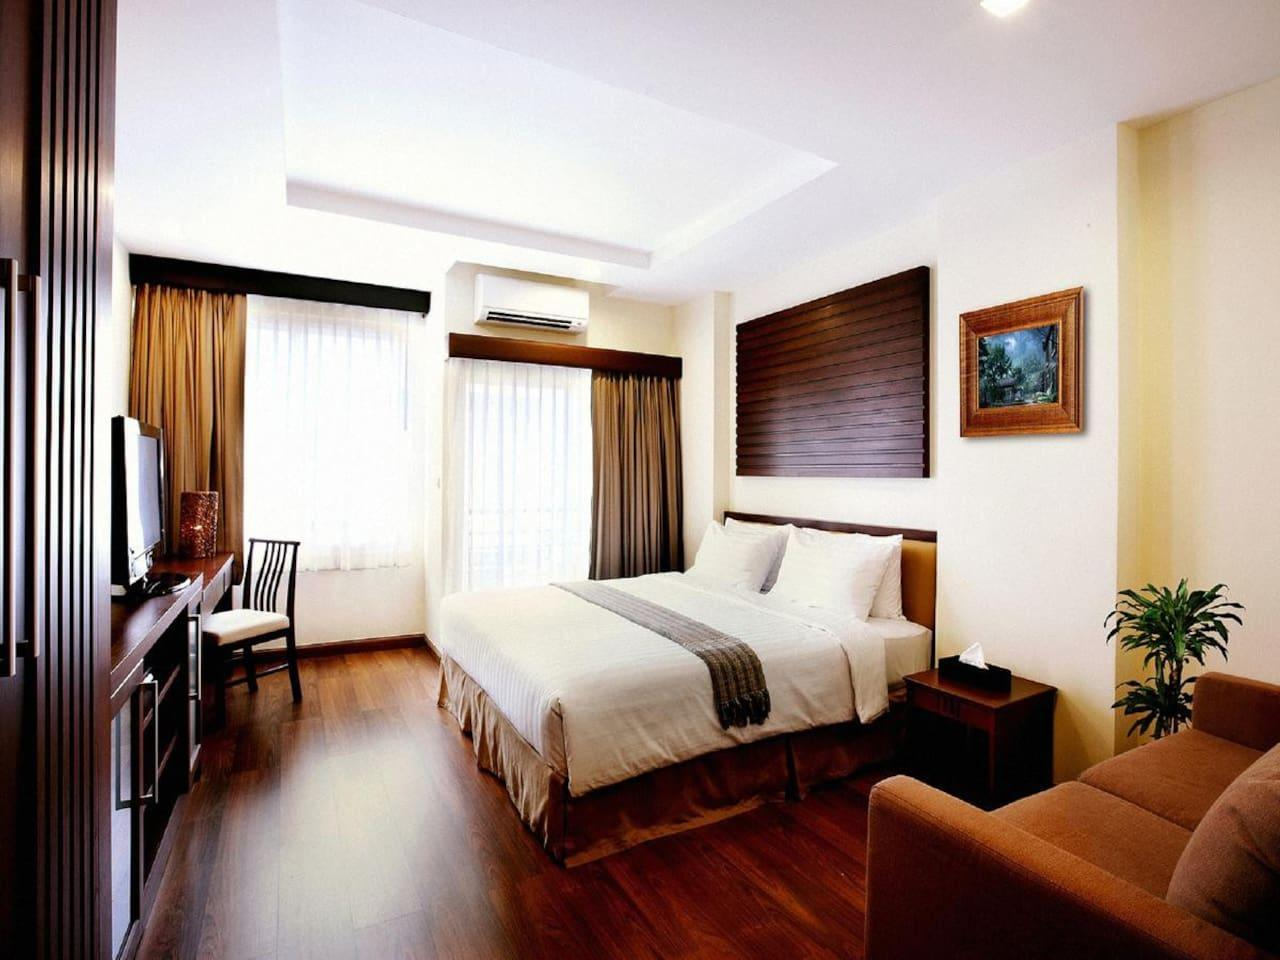 Deluxe Room 5 Minute To Ploenchit BTS Station